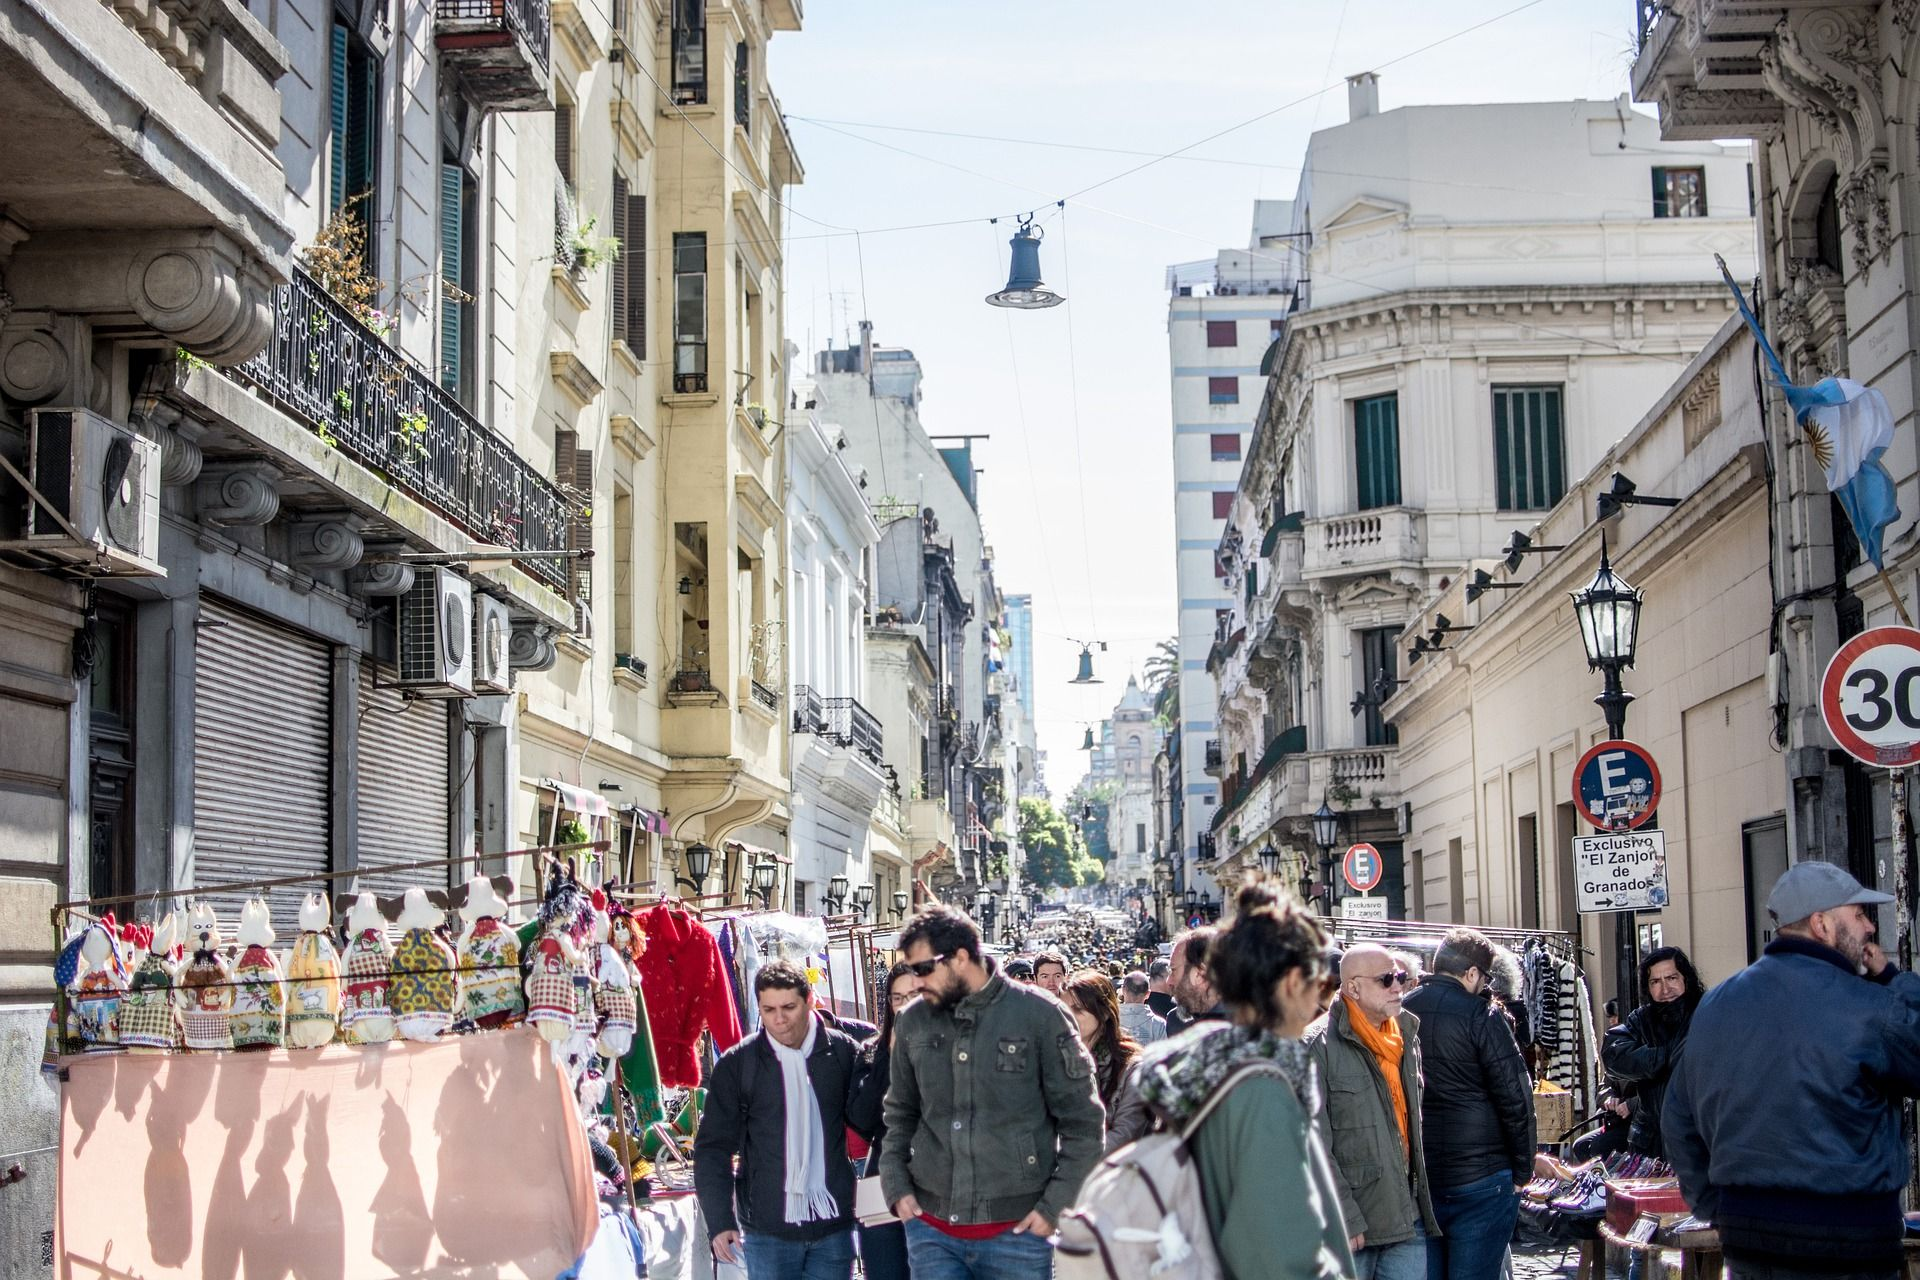 Busy street full of pedestrians in Buenos Aires, Argentina